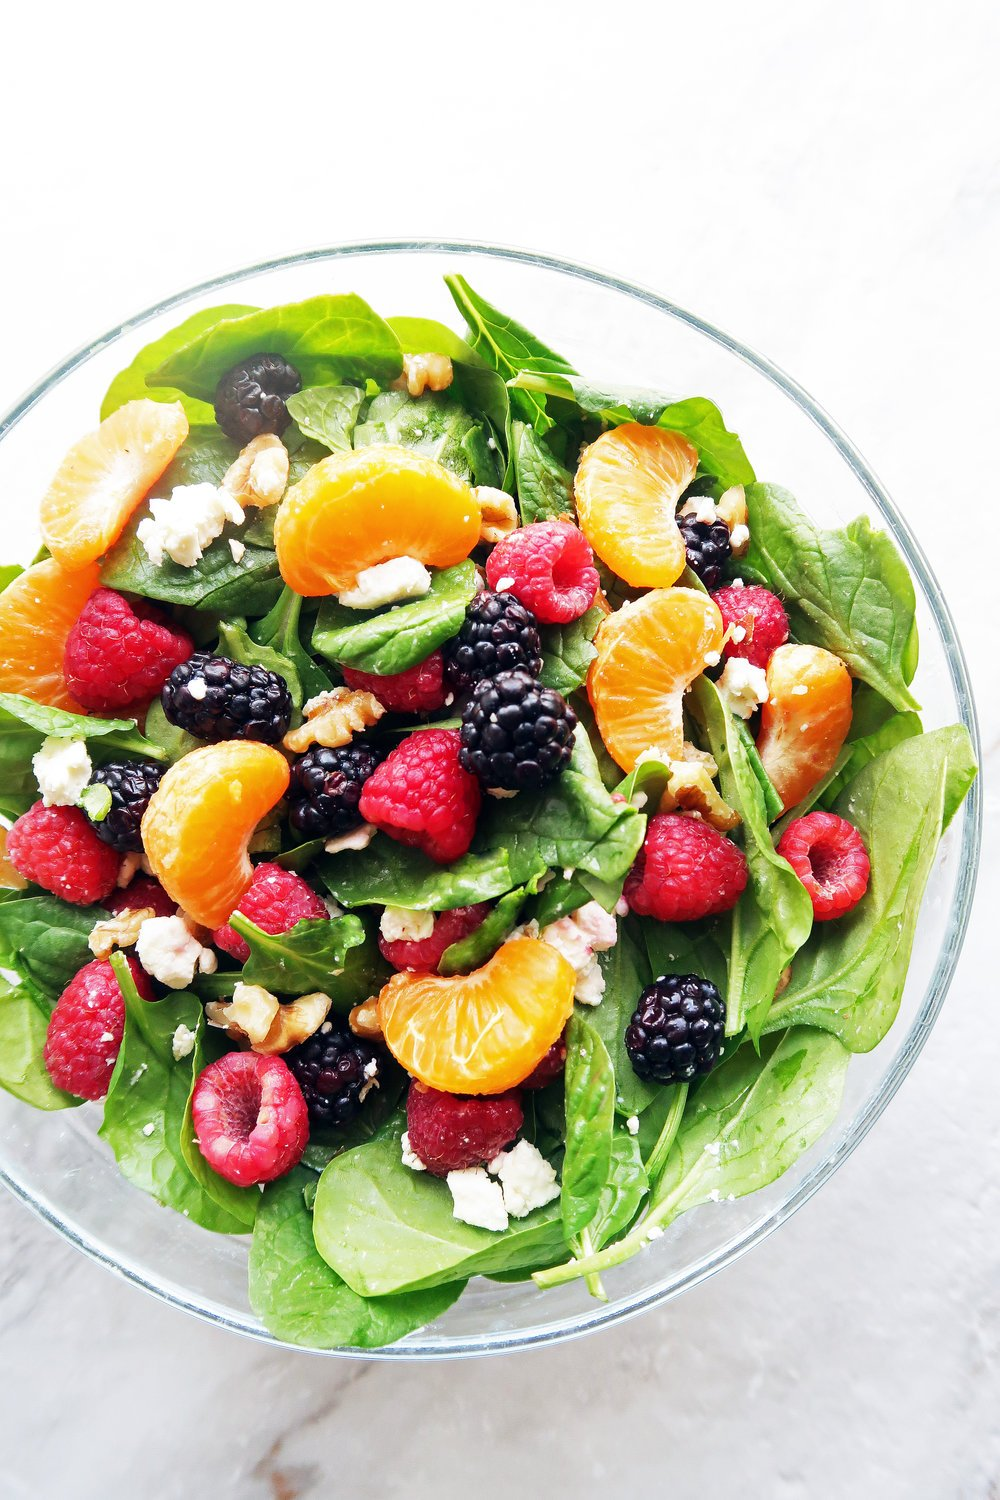 Citrus Berry Spinach Salad with Balsamic Vinaigrette